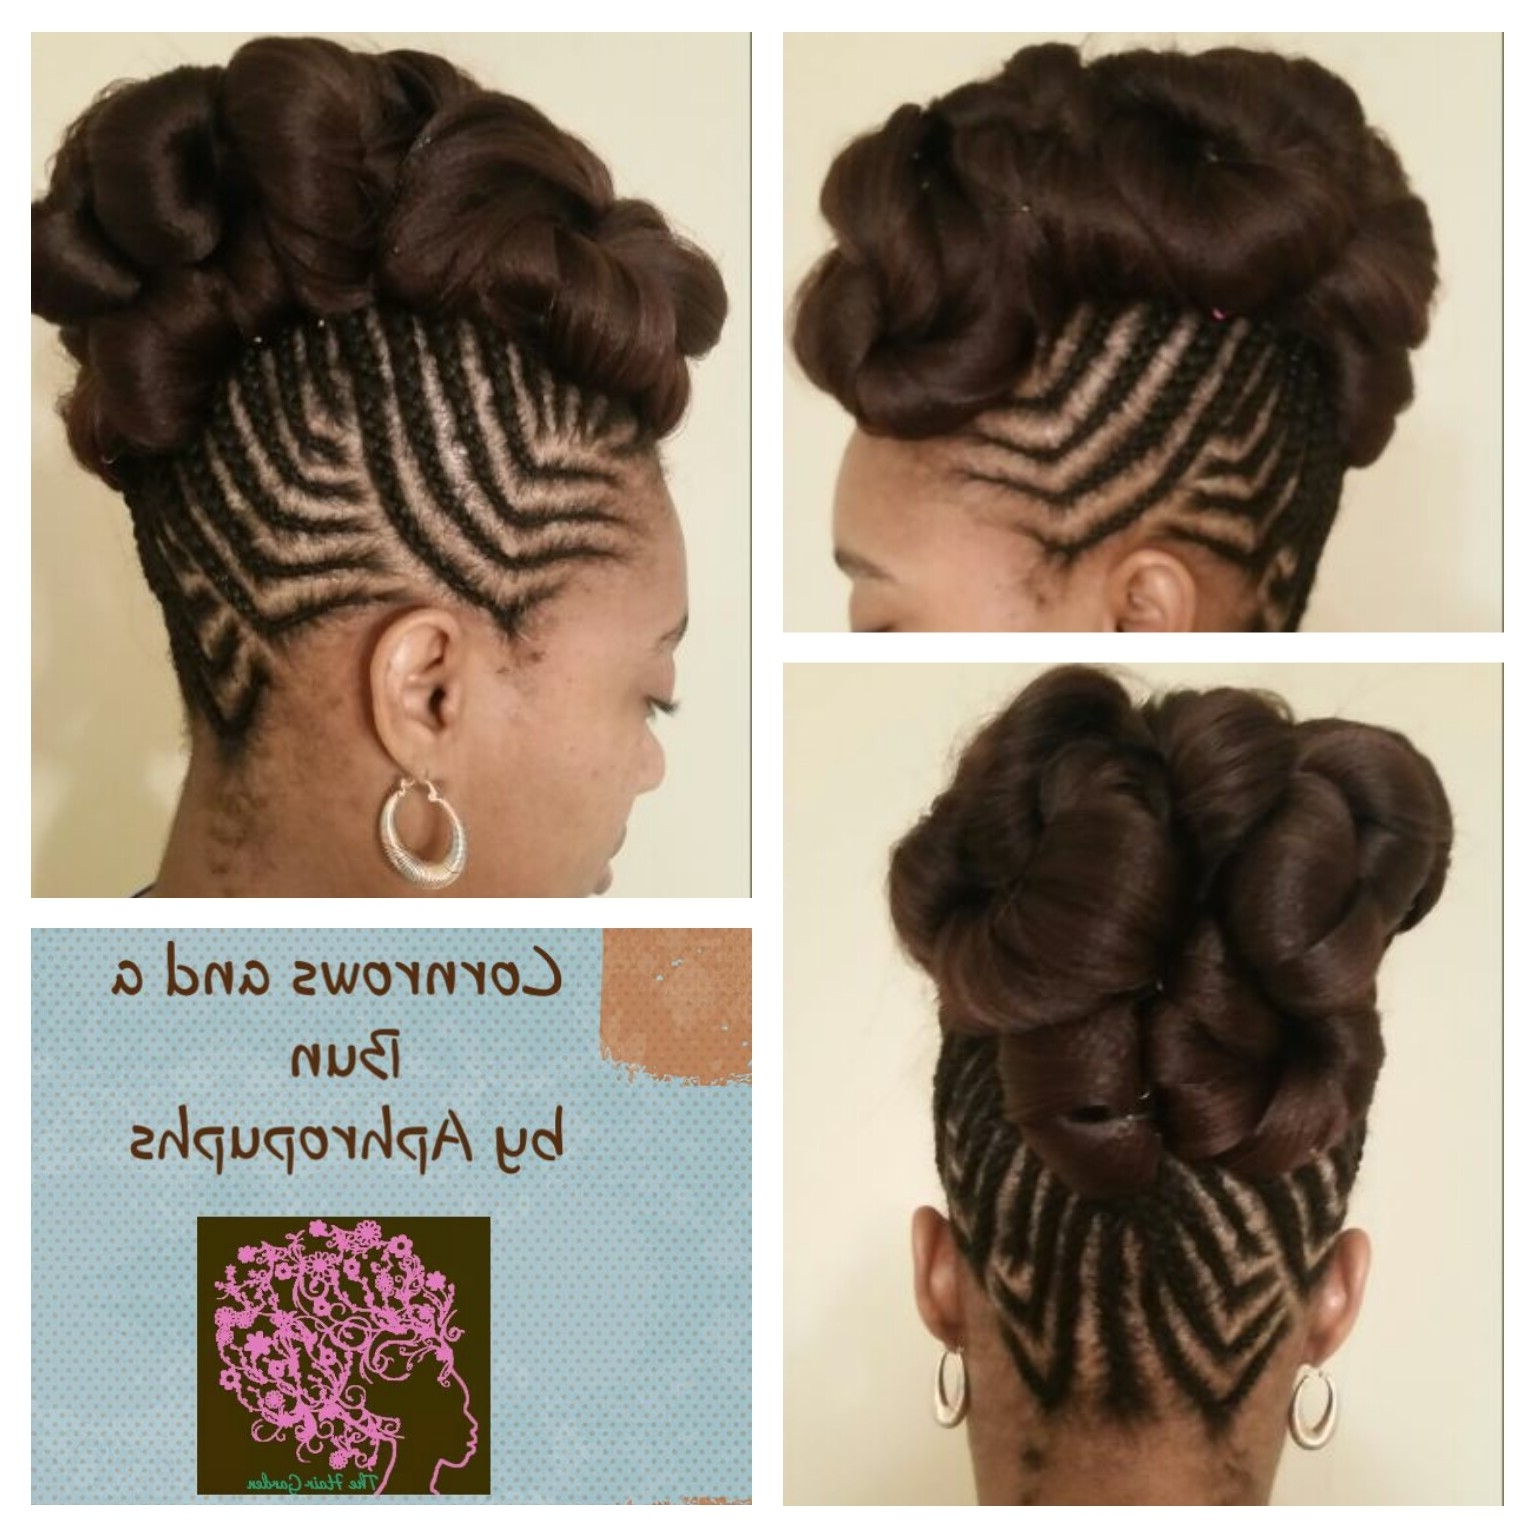 Cornrows And A Bun – The Hair Garden Nursery Regarding 2017 Cornrows Hairstyles In A Bun (View 6 of 15)